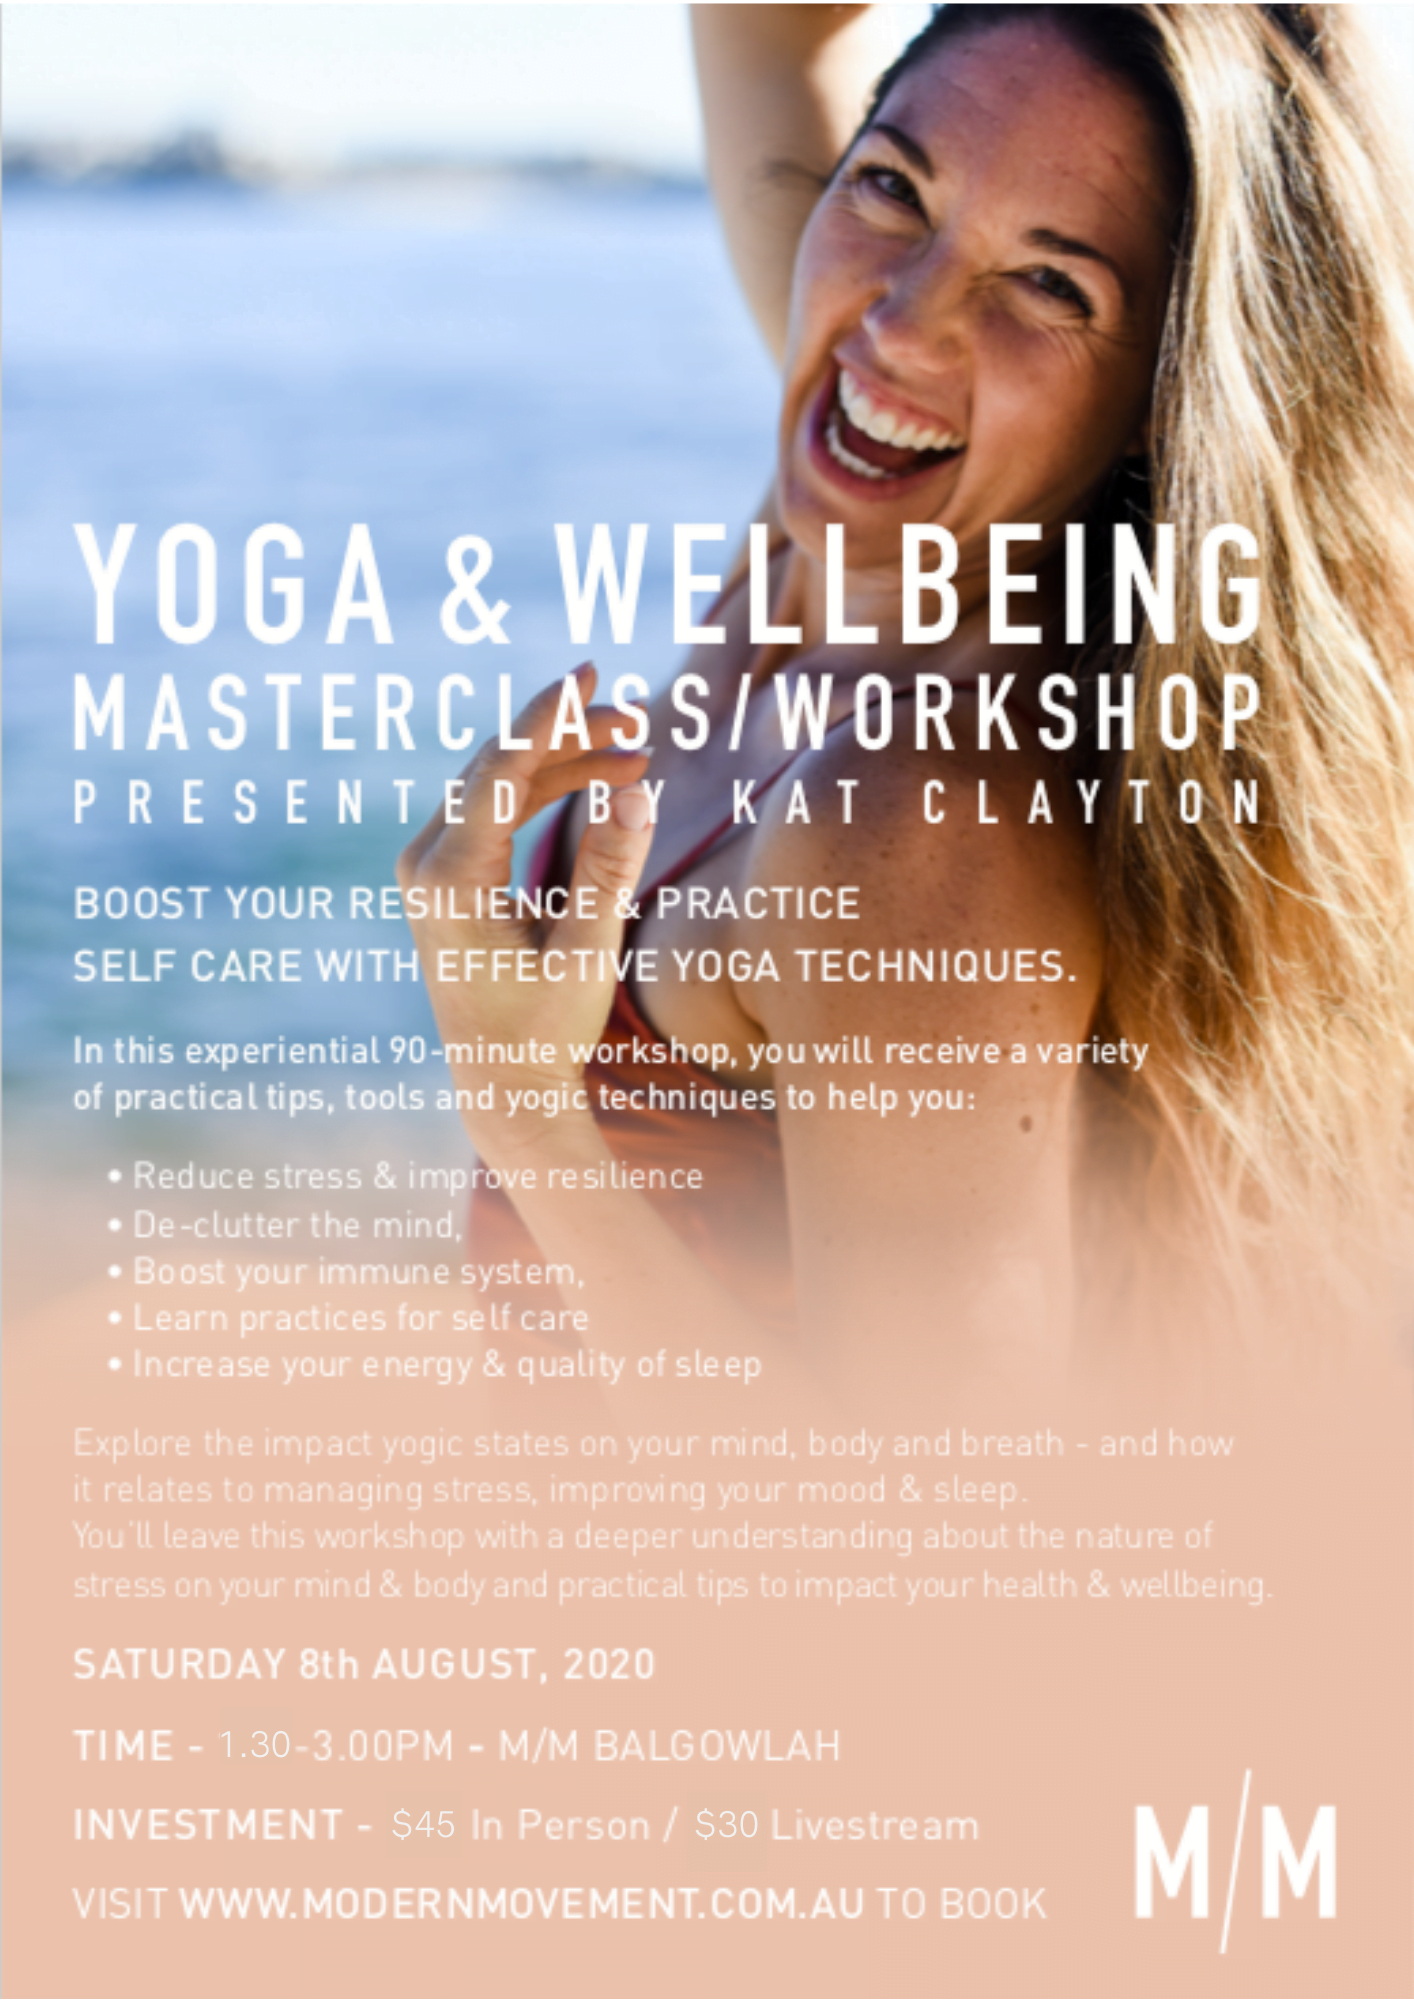 Yoga Wellbeing Workshop with Kat